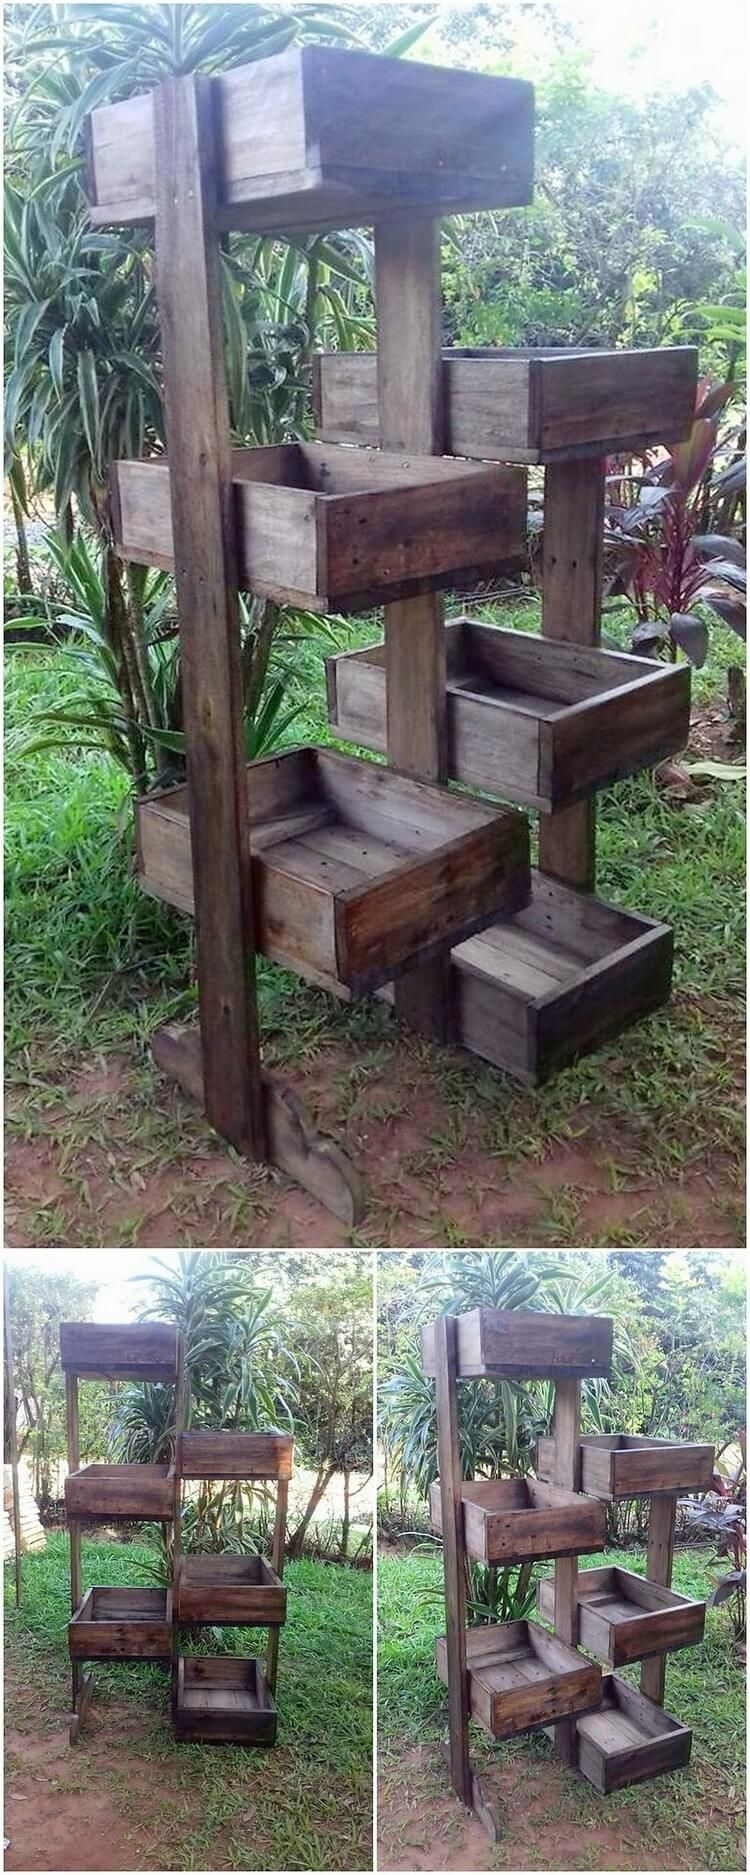 This Is Another Superb Creation Of The Wood Pallet That Is Interestingly  Designed In Planter Stand Formations. This Planter Stand Is Making You  Splendid ...